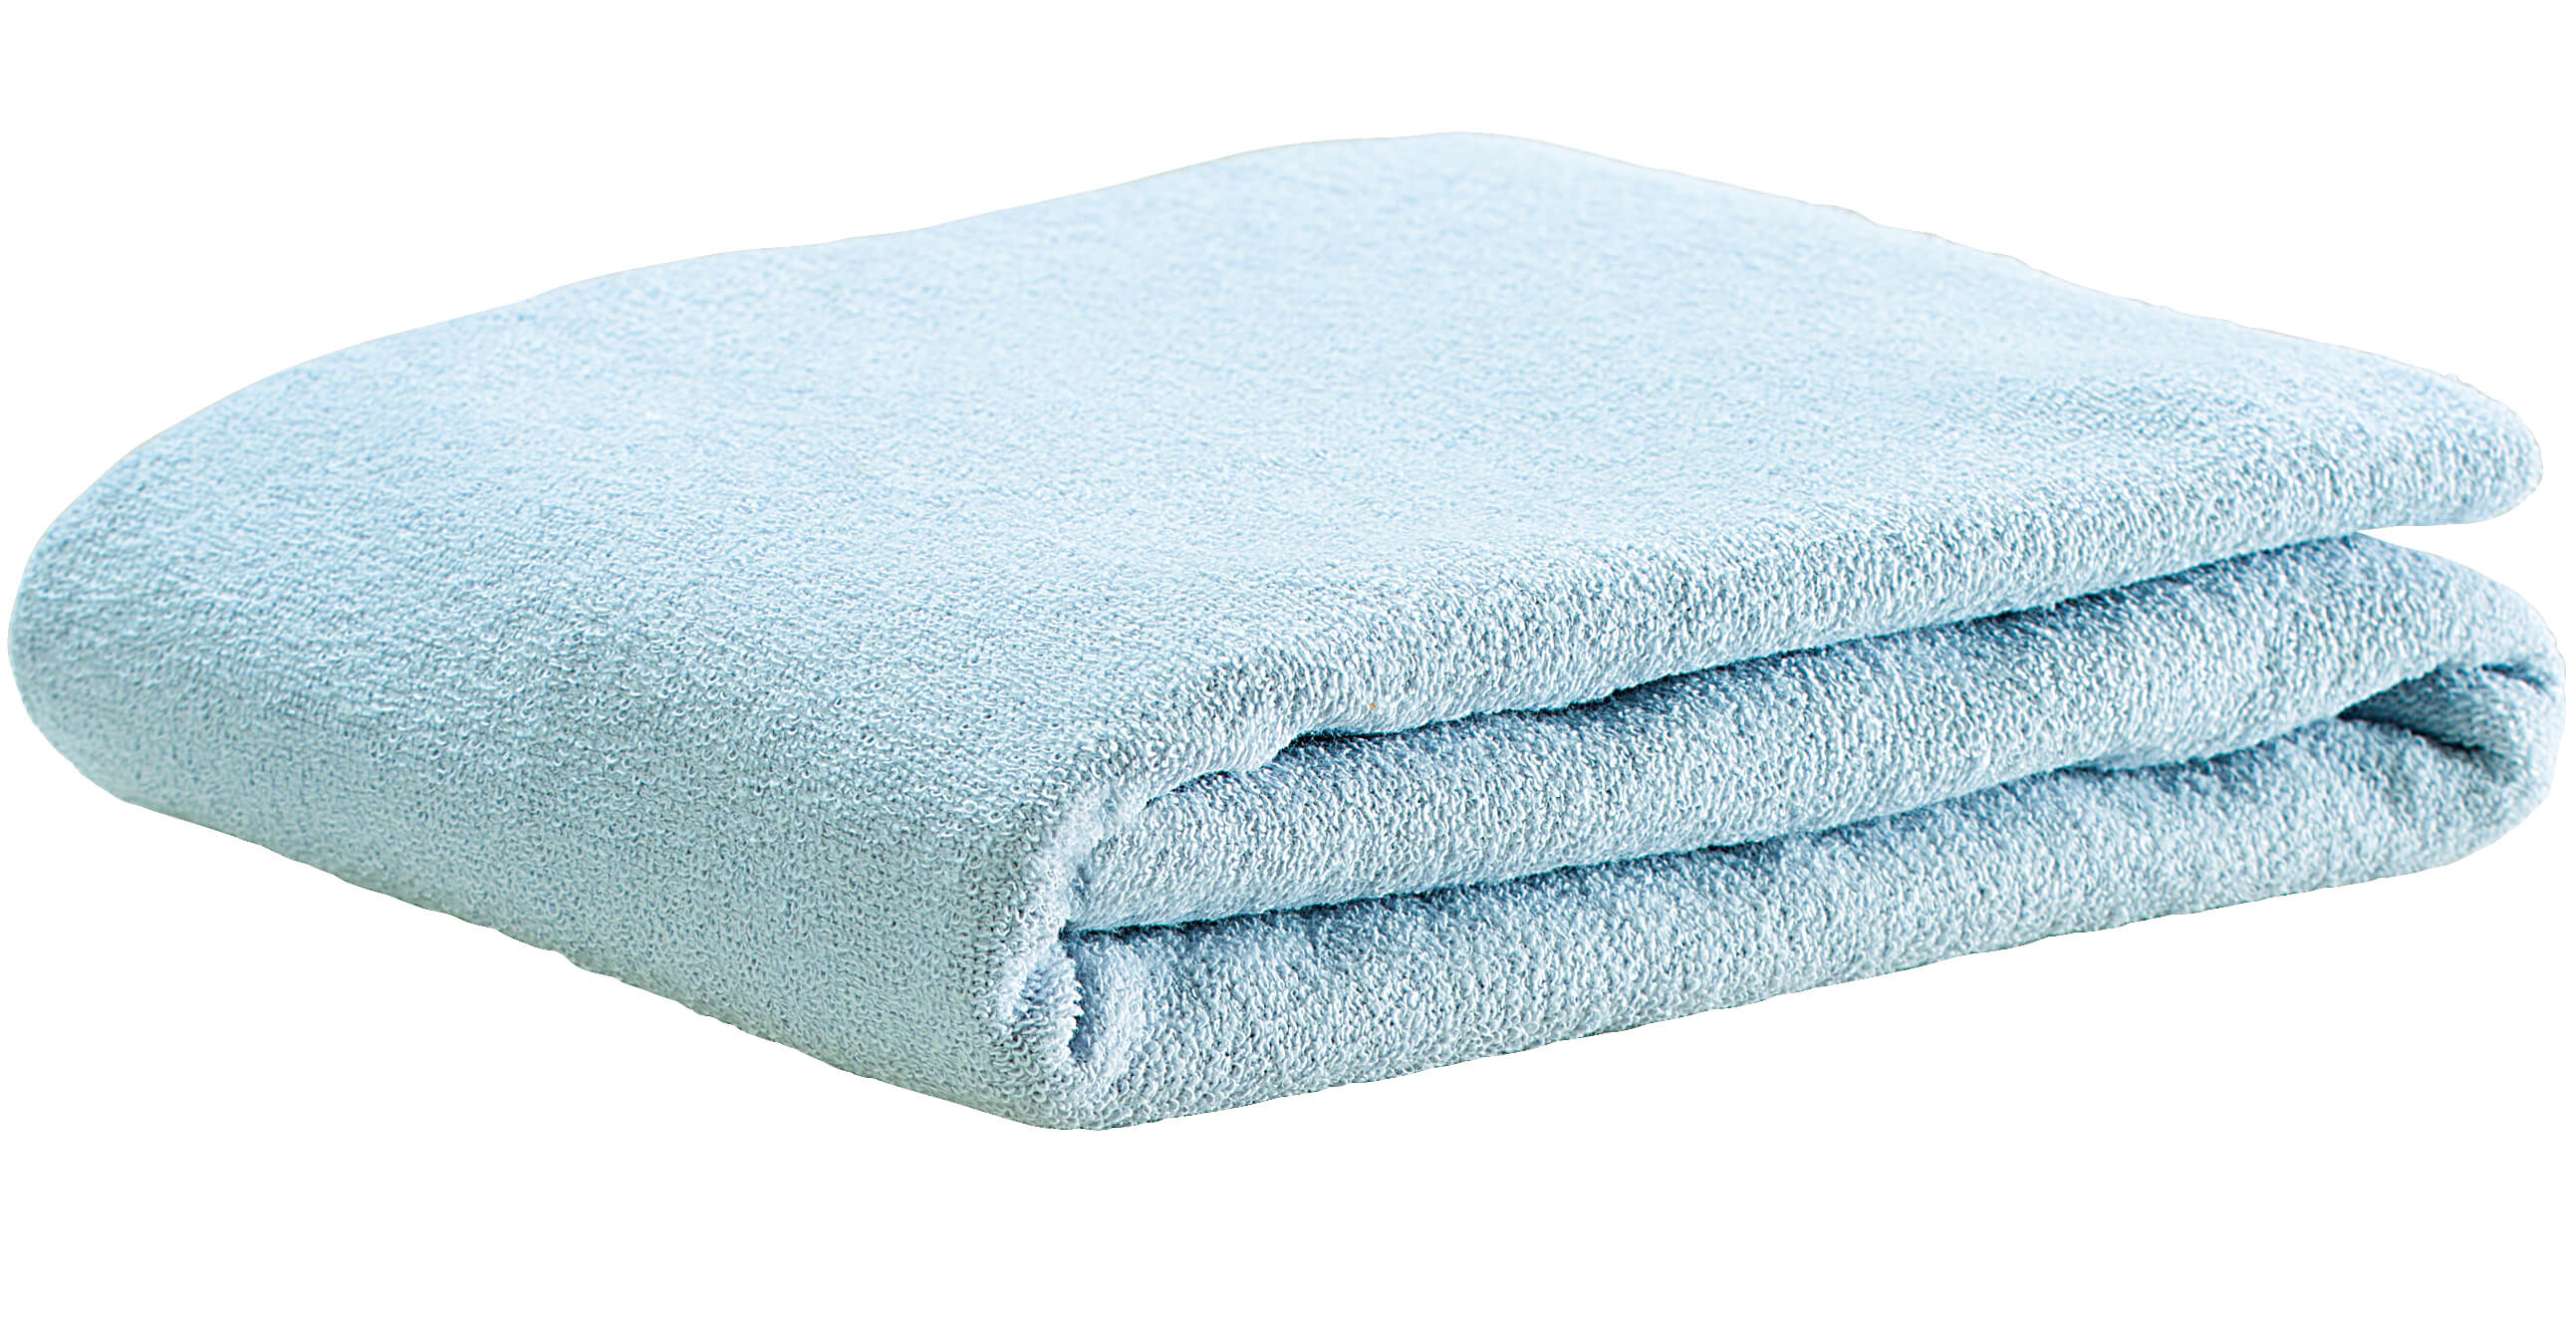 Best Fitted Sheets Manufacturers in Pakistan